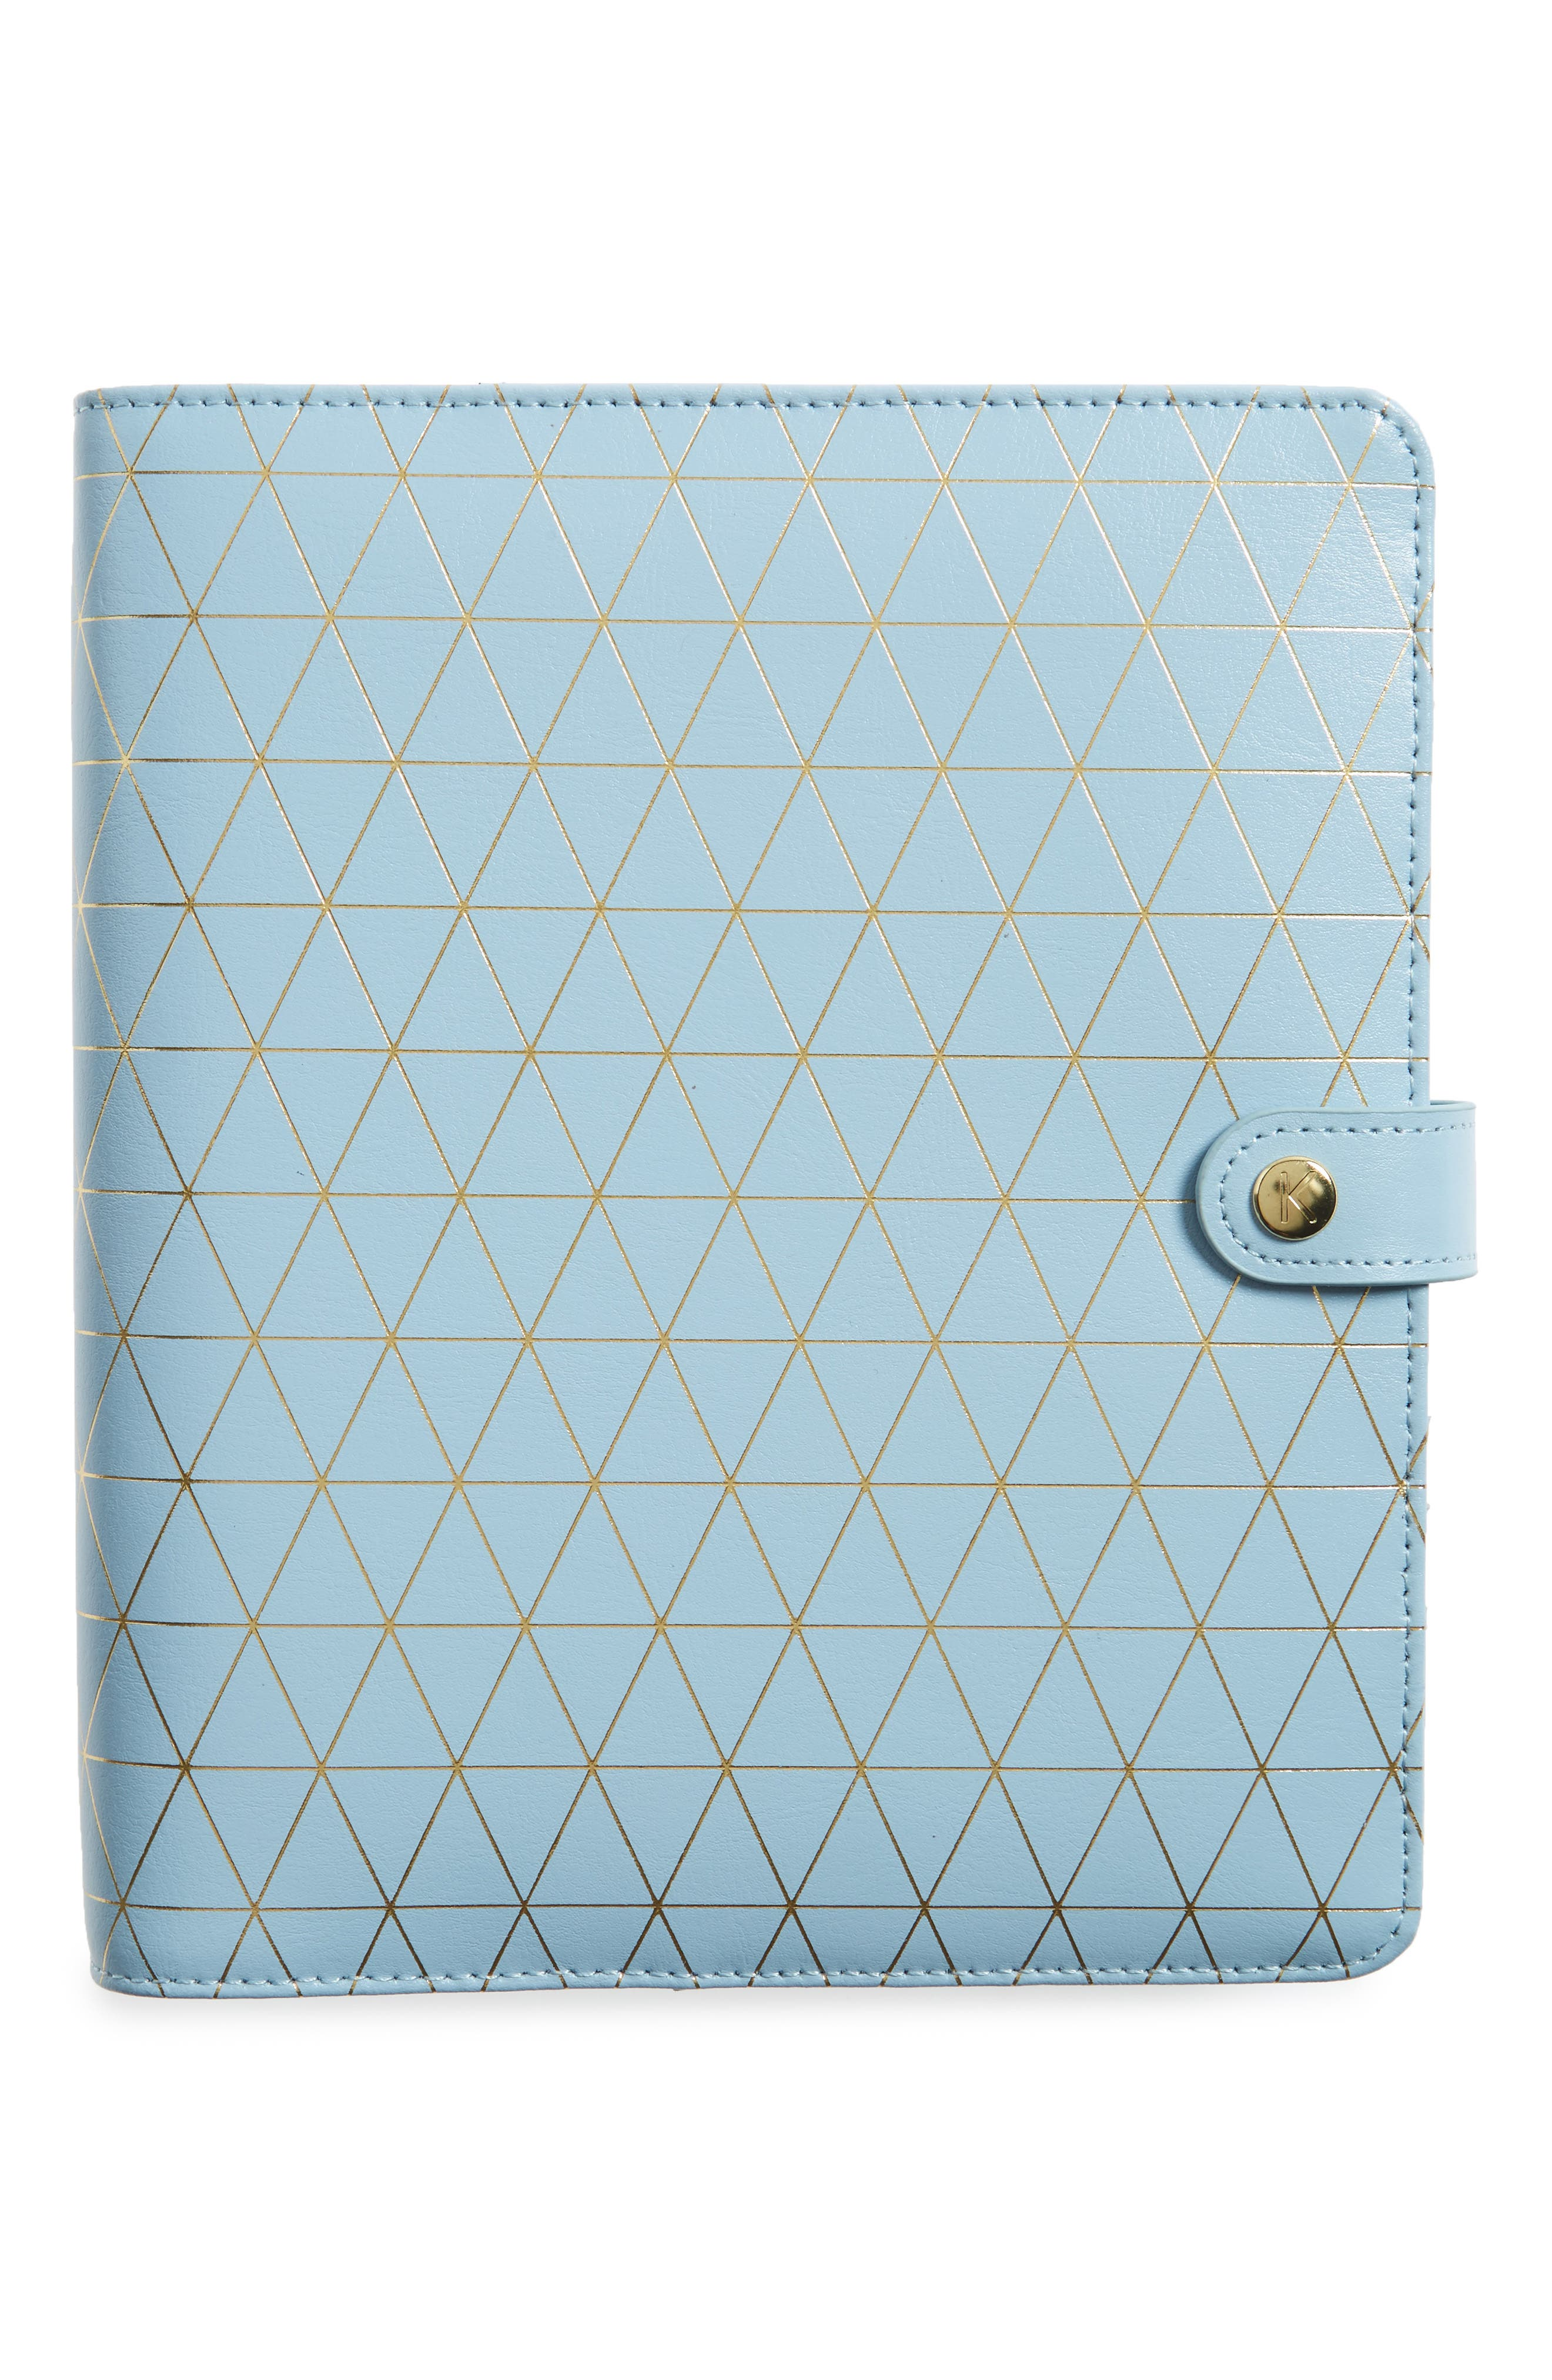 Large Leather Wellness Planner,                             Main thumbnail 1, color,                             Light Blue/ Gold